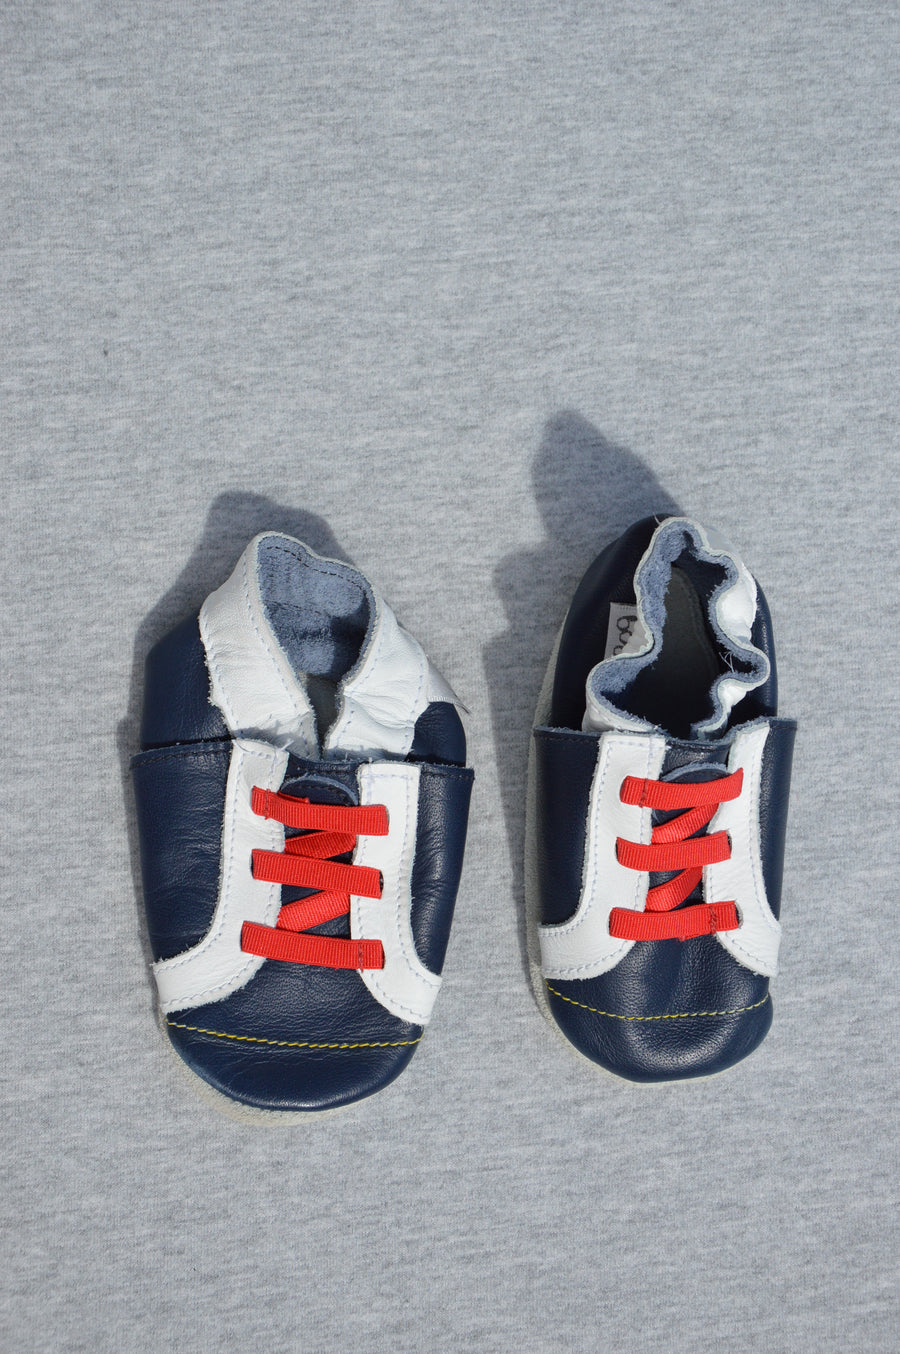 Bobux - nearly new - navy & white pre-walk sneakers, size NZ 0.5/1 (S)